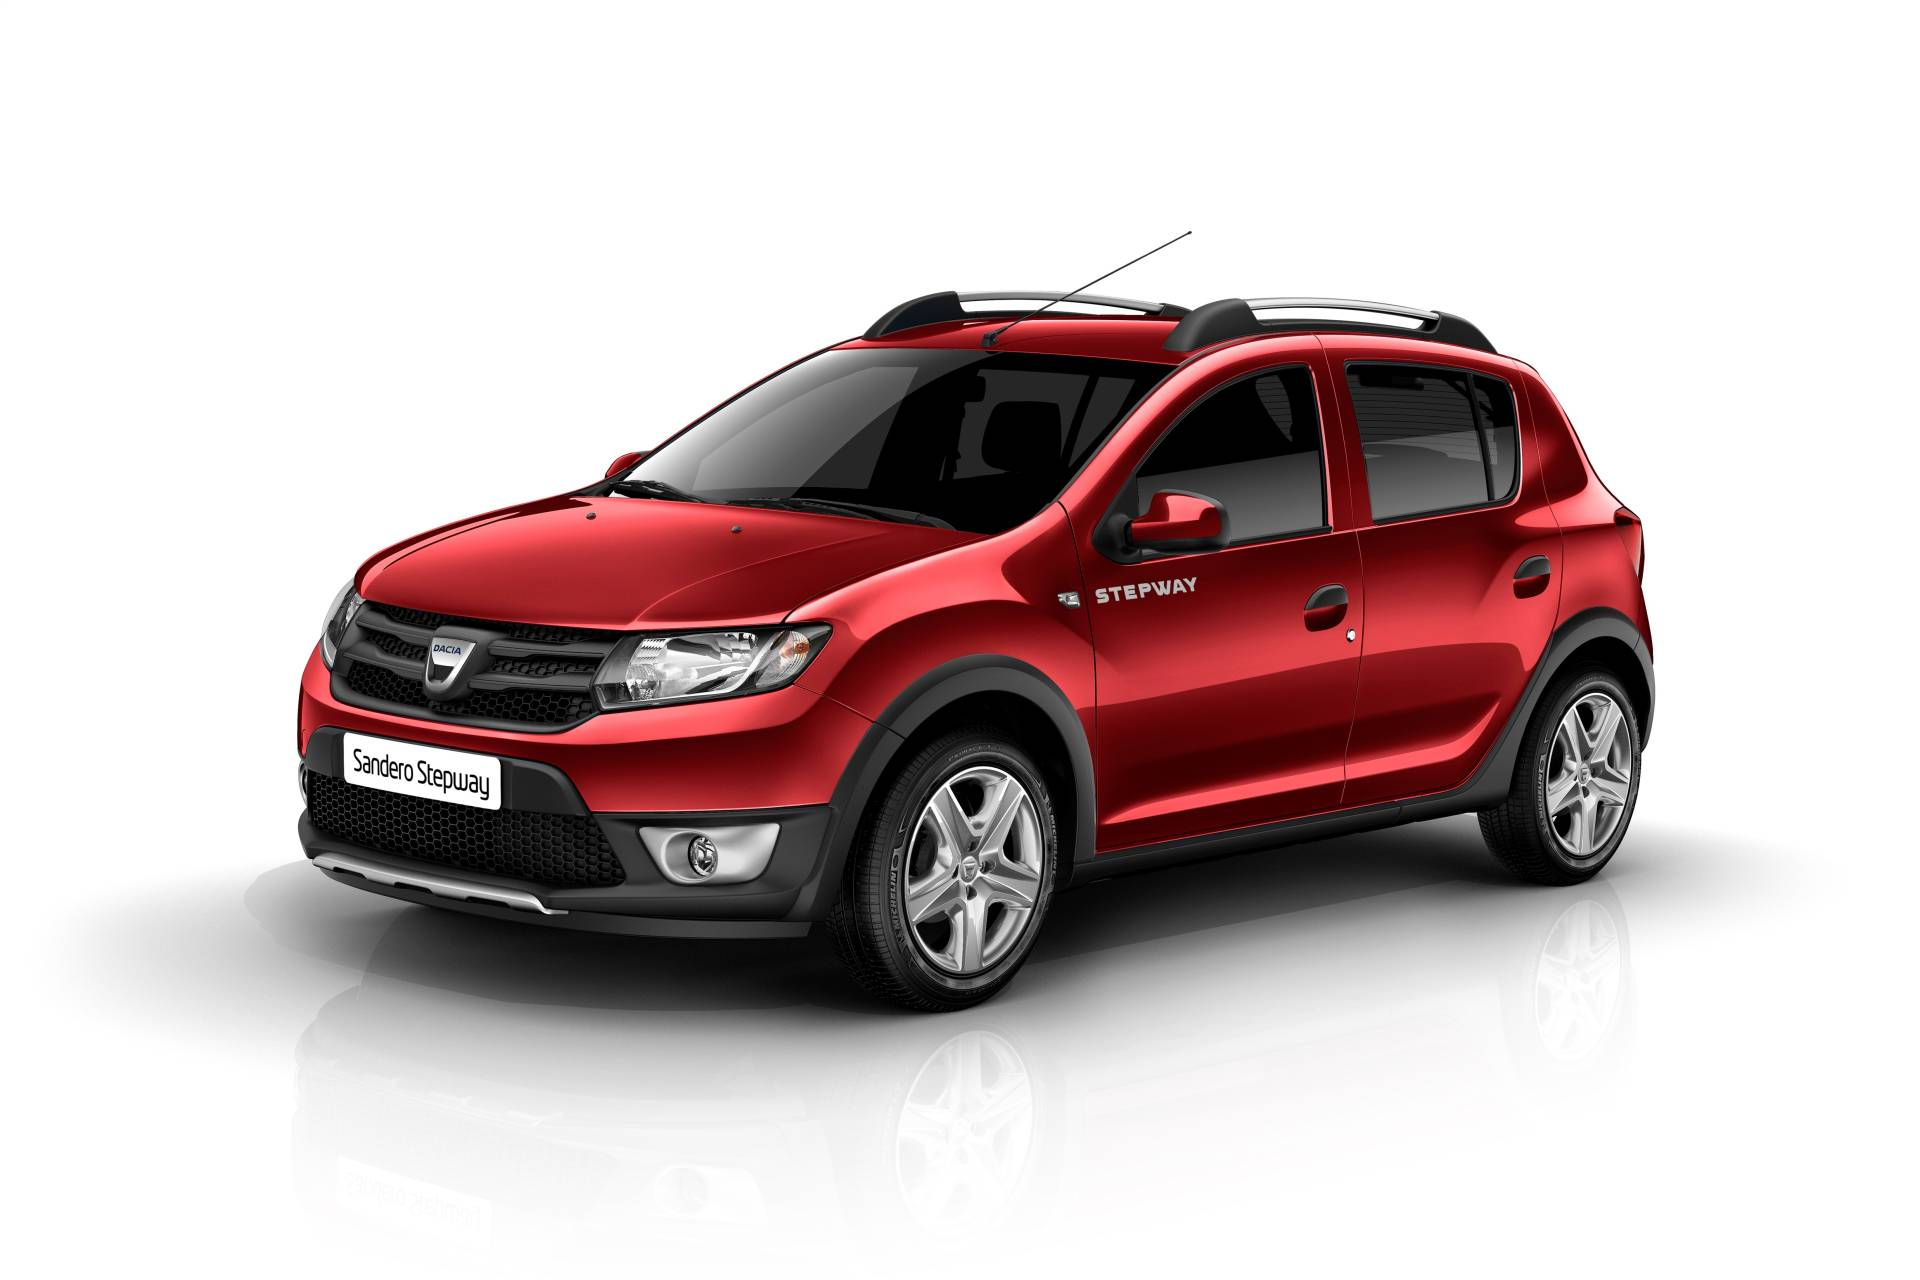 2013 dacia sandero stepway image. Black Bedroom Furniture Sets. Home Design Ideas